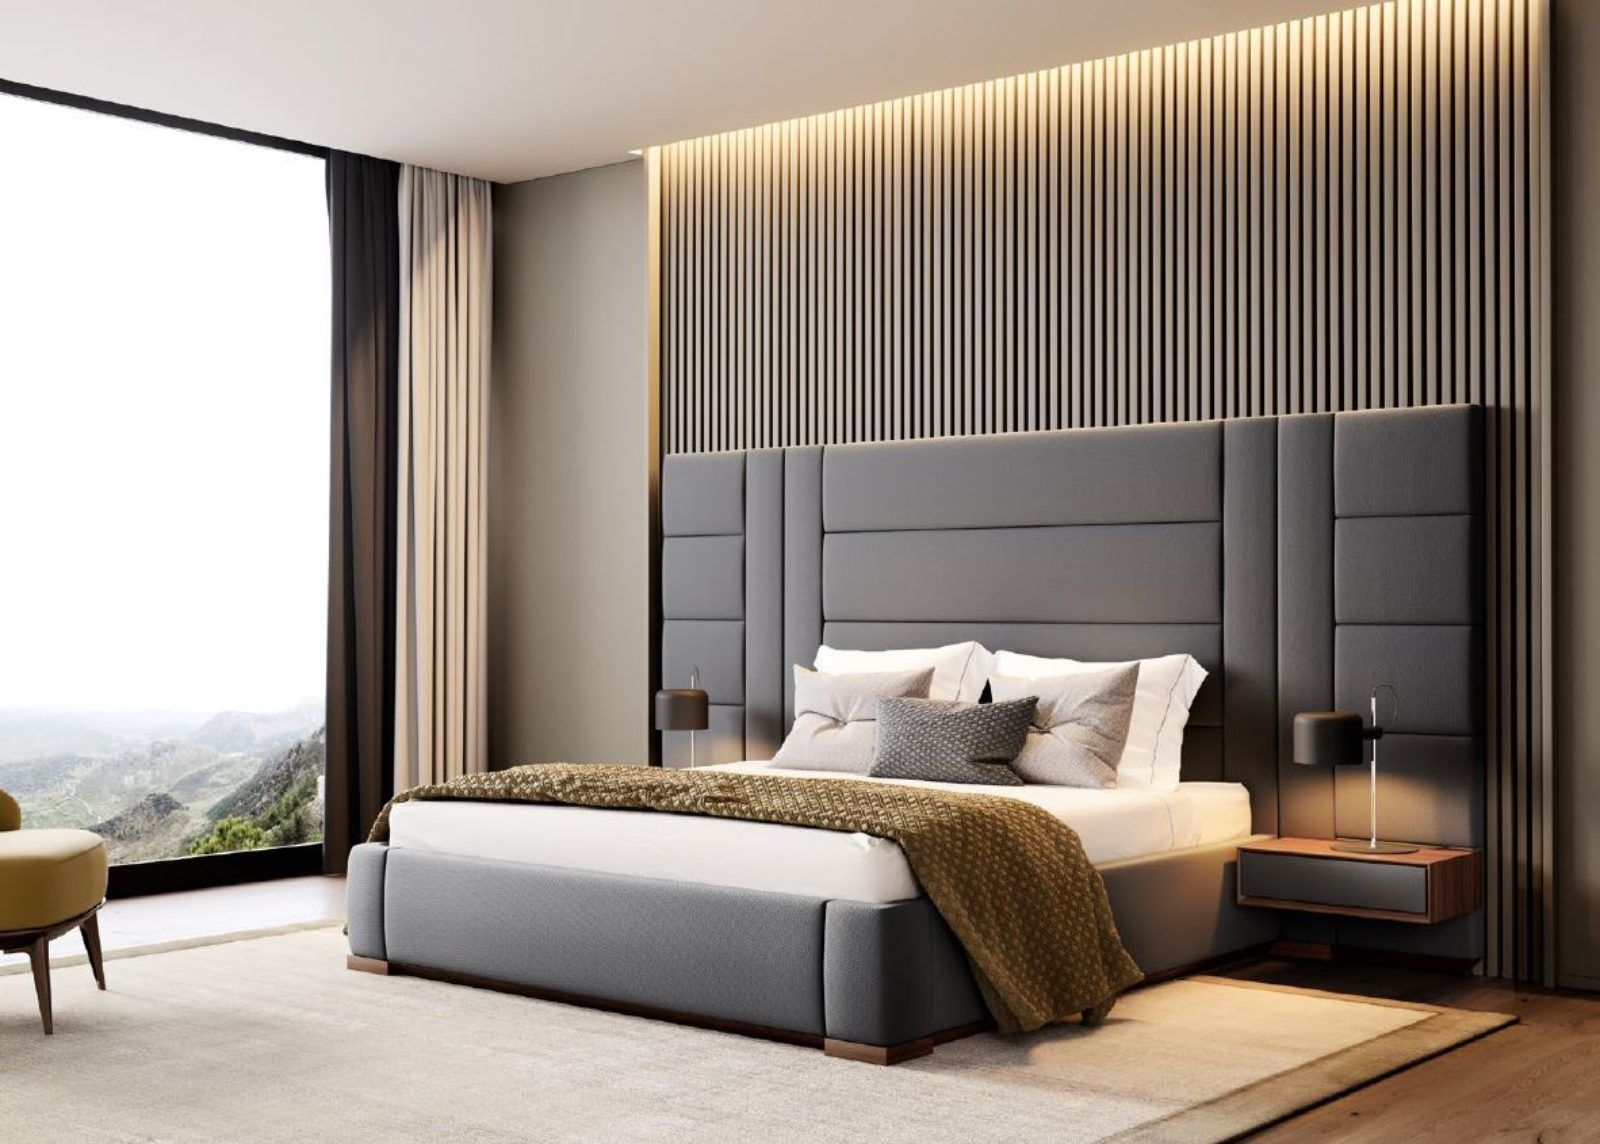 Contemporary Bedroom Interior Design That Very Cozy 04 Realivin Net Room Design Bedroom Luxury Bedroom Design Luxurious Bedrooms